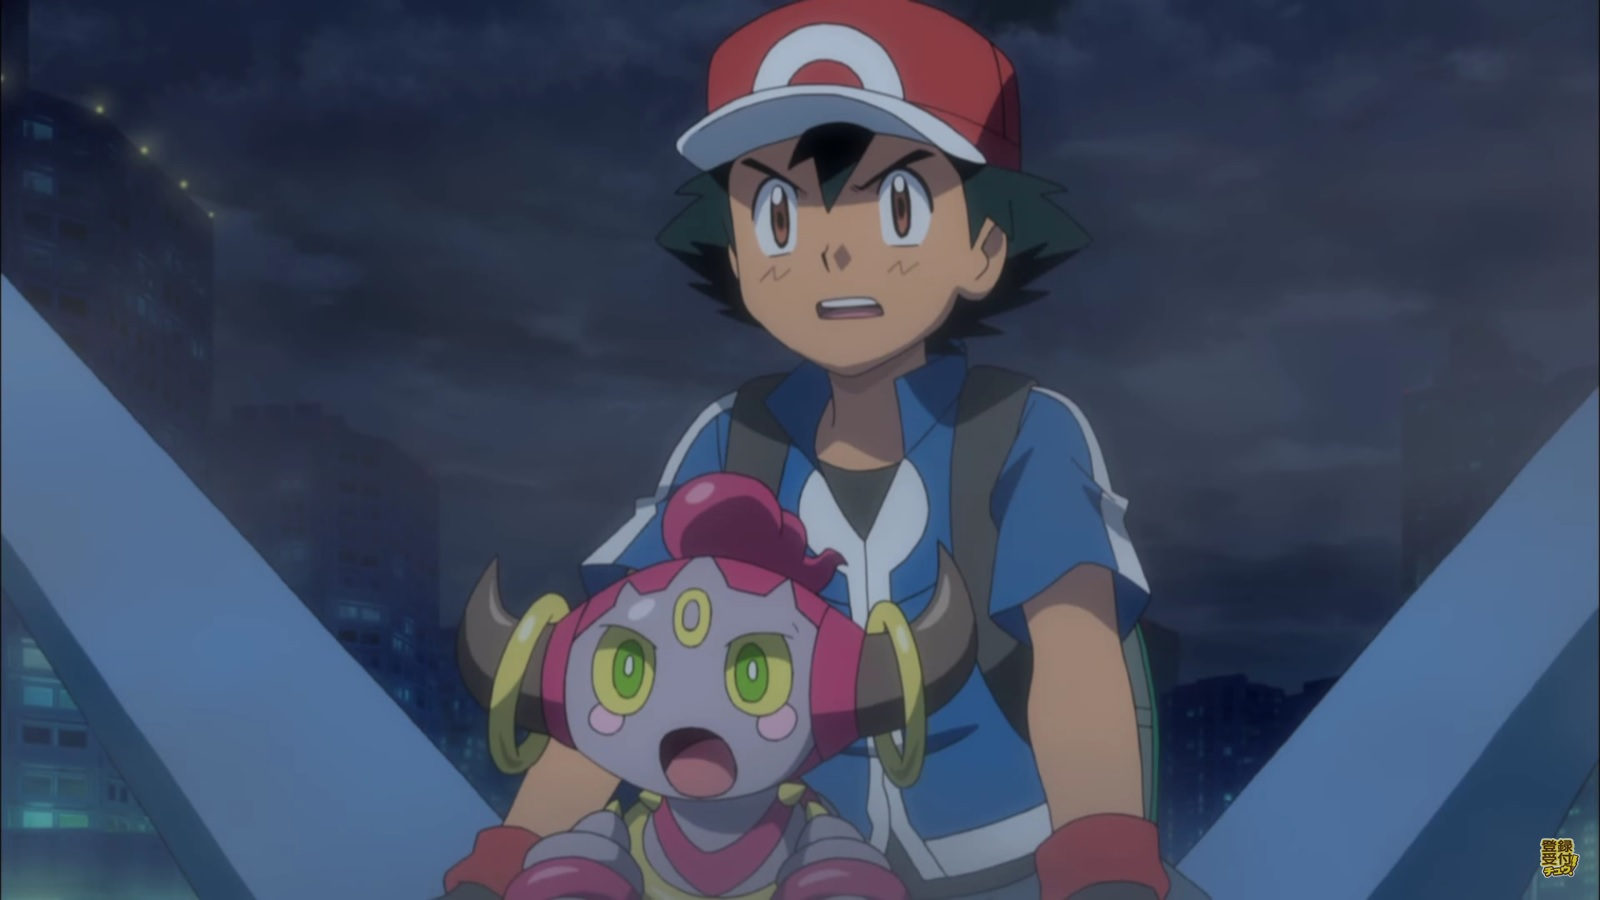 Pokémon film 18 en VOSTFR streaming (Hoopa)